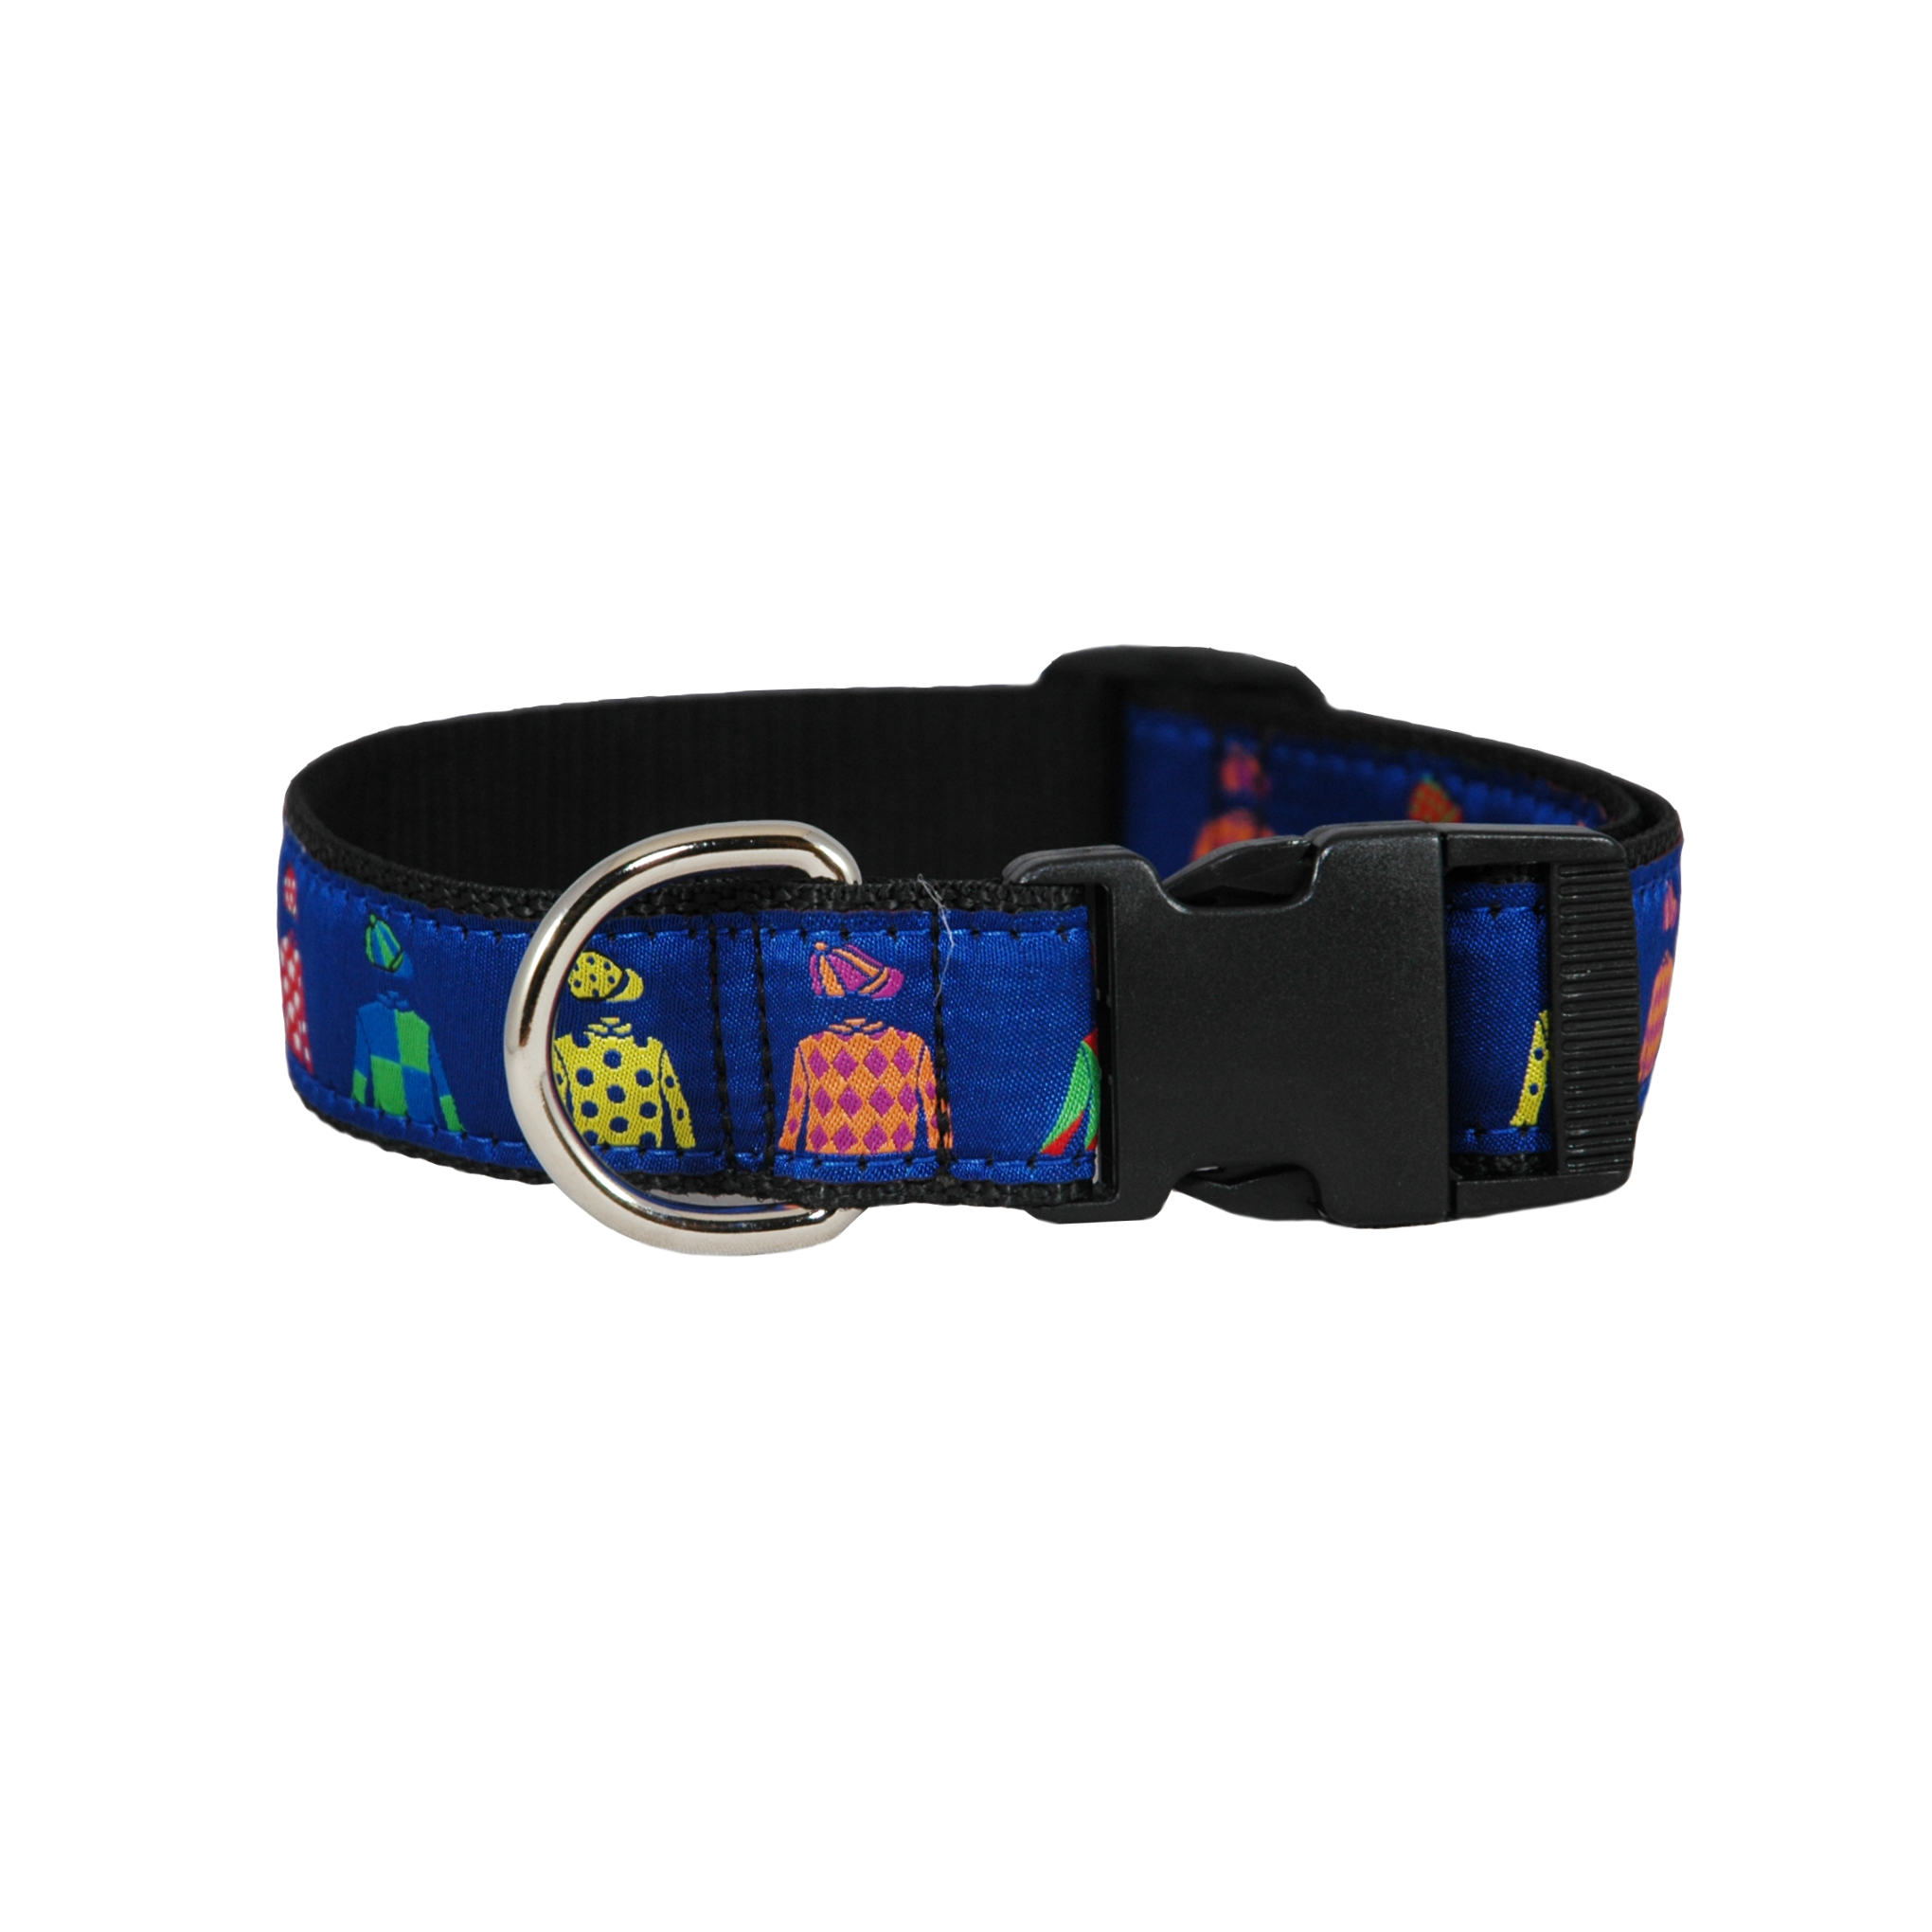 Jockey Silks Ribbon Dog Collar